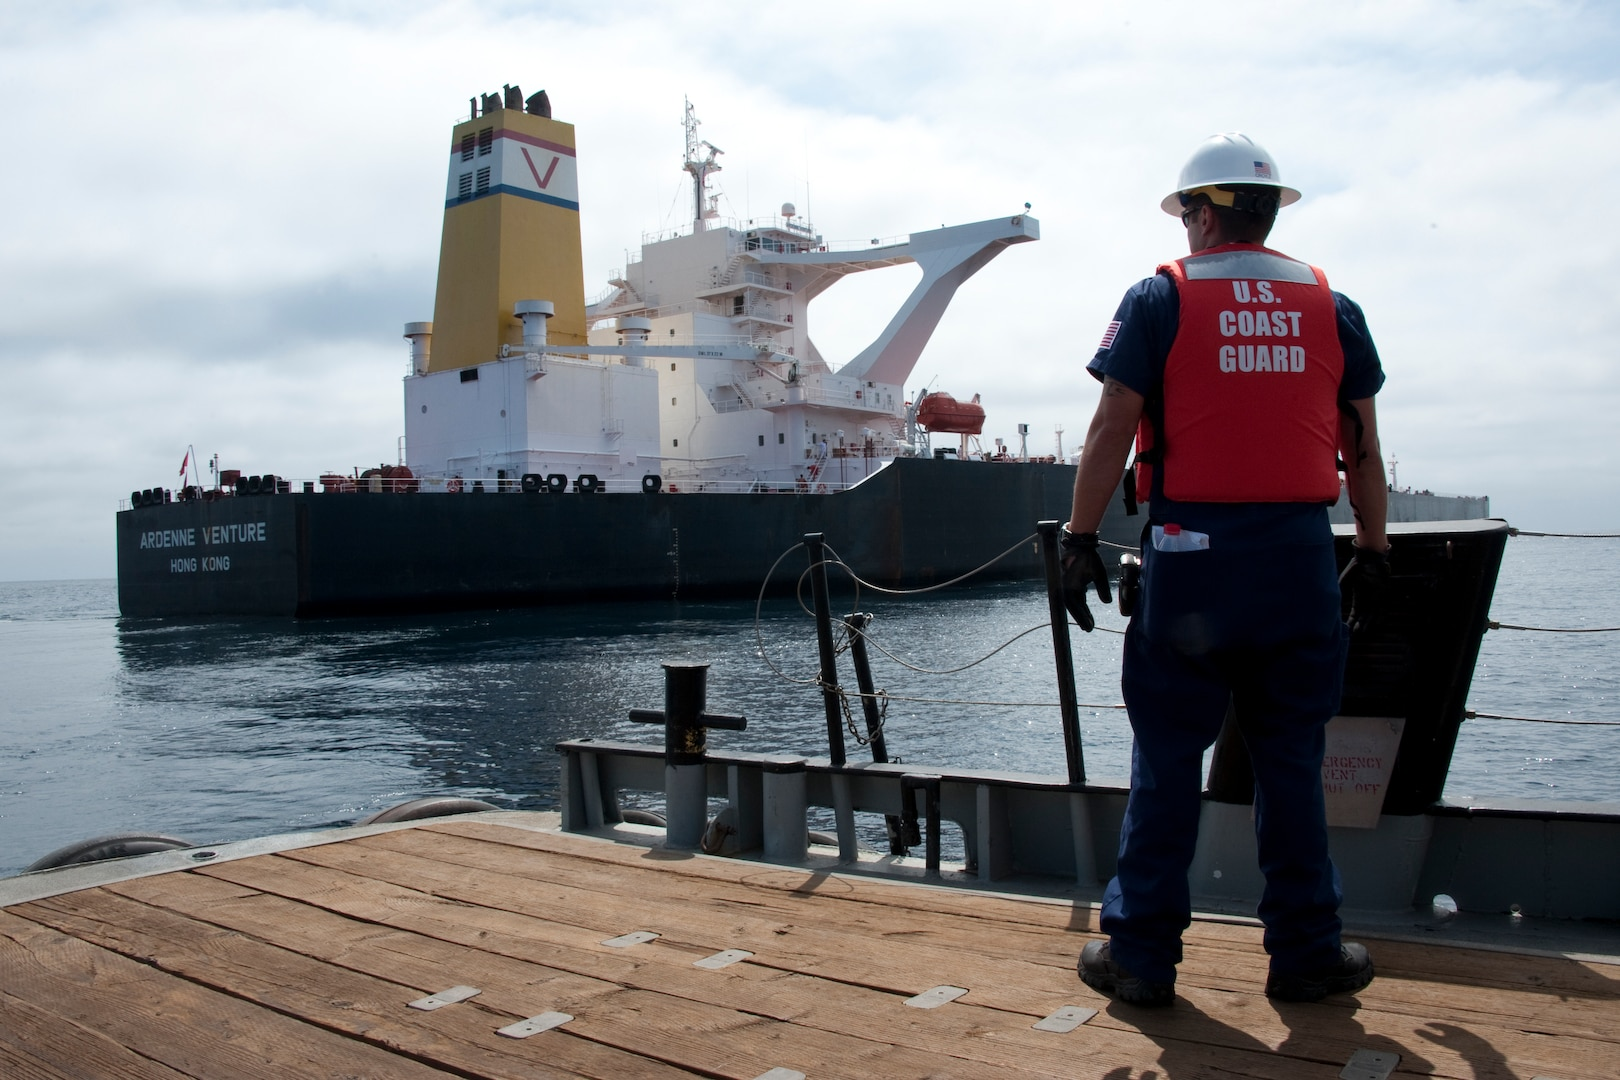 U.S. Coastguardman watches as crew boat departs from Ardenne Venture after annual exam to ensure it complies with U.S. and international regulations prior to operating in U.S. waters and ports, San Diego, California, August 3, 2012 (U.S. Coast Guard/Henry G. Dunphy)